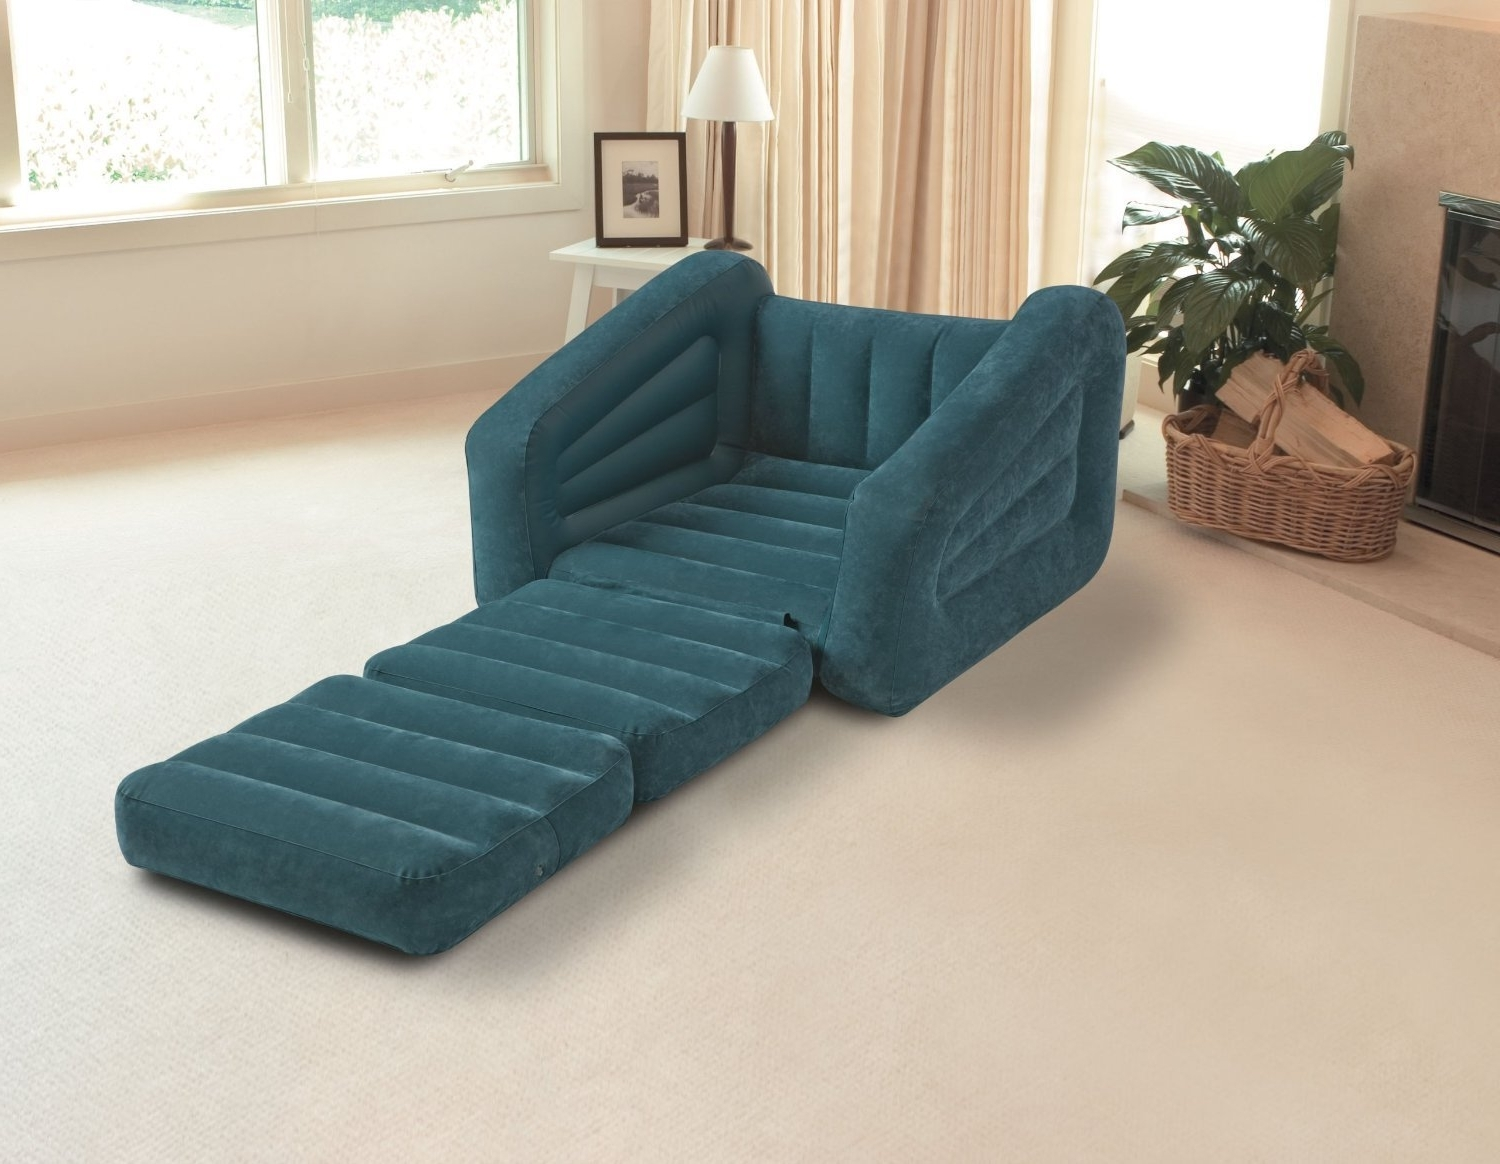 Pull Out Sofa Chairs With Regard To Fashionable Top 10 Best Comfy Sleeper Chairs Reviews 2018 2019 On Flipboard (View 11 of 15)